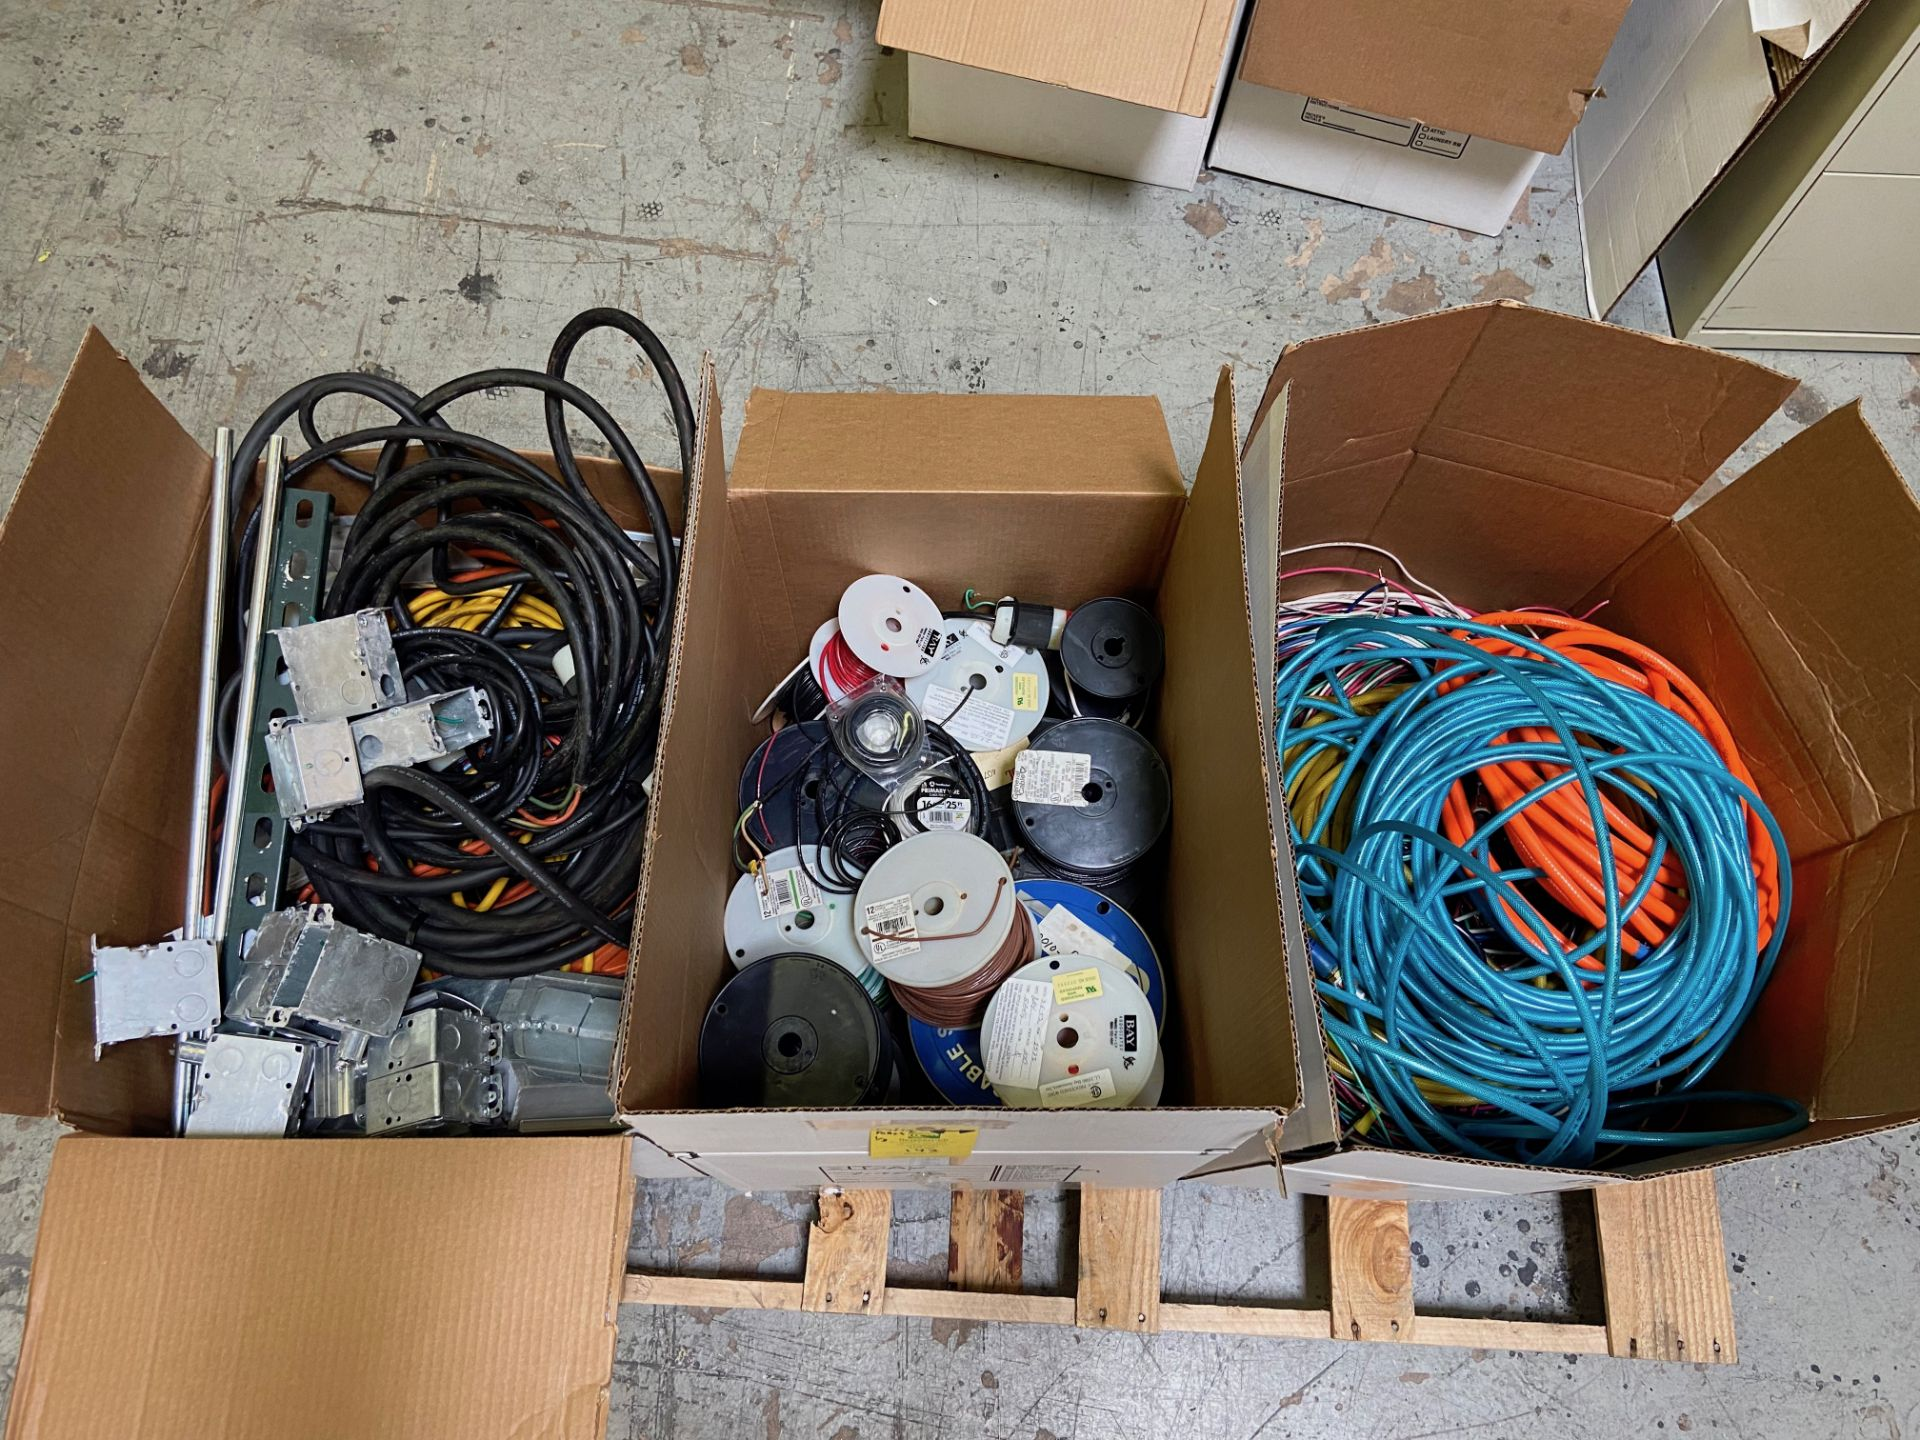 Miscellaneous Electrical/ Cable, Air House (All Pictured), Rigging Fee: $25